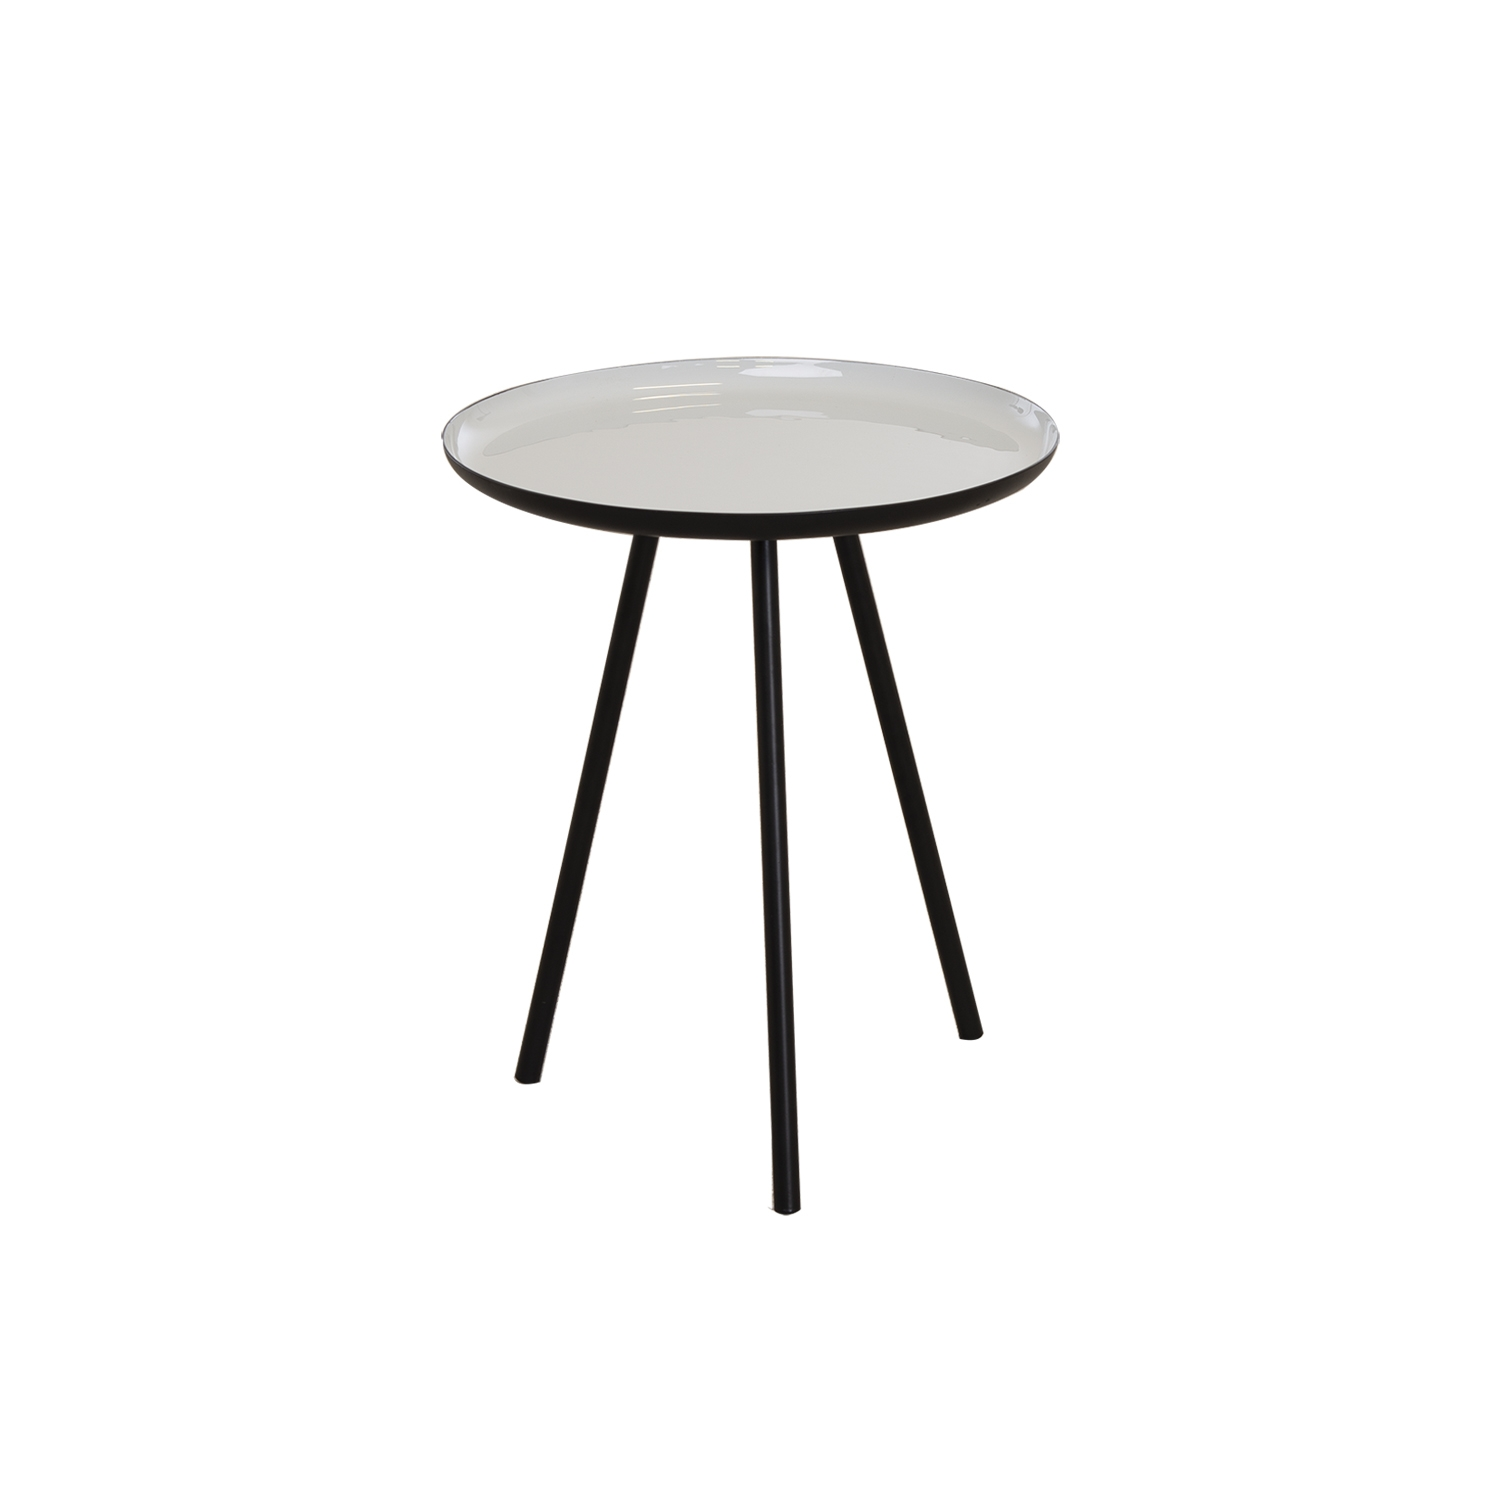 Image of Casa Short Occasional Table, Grey